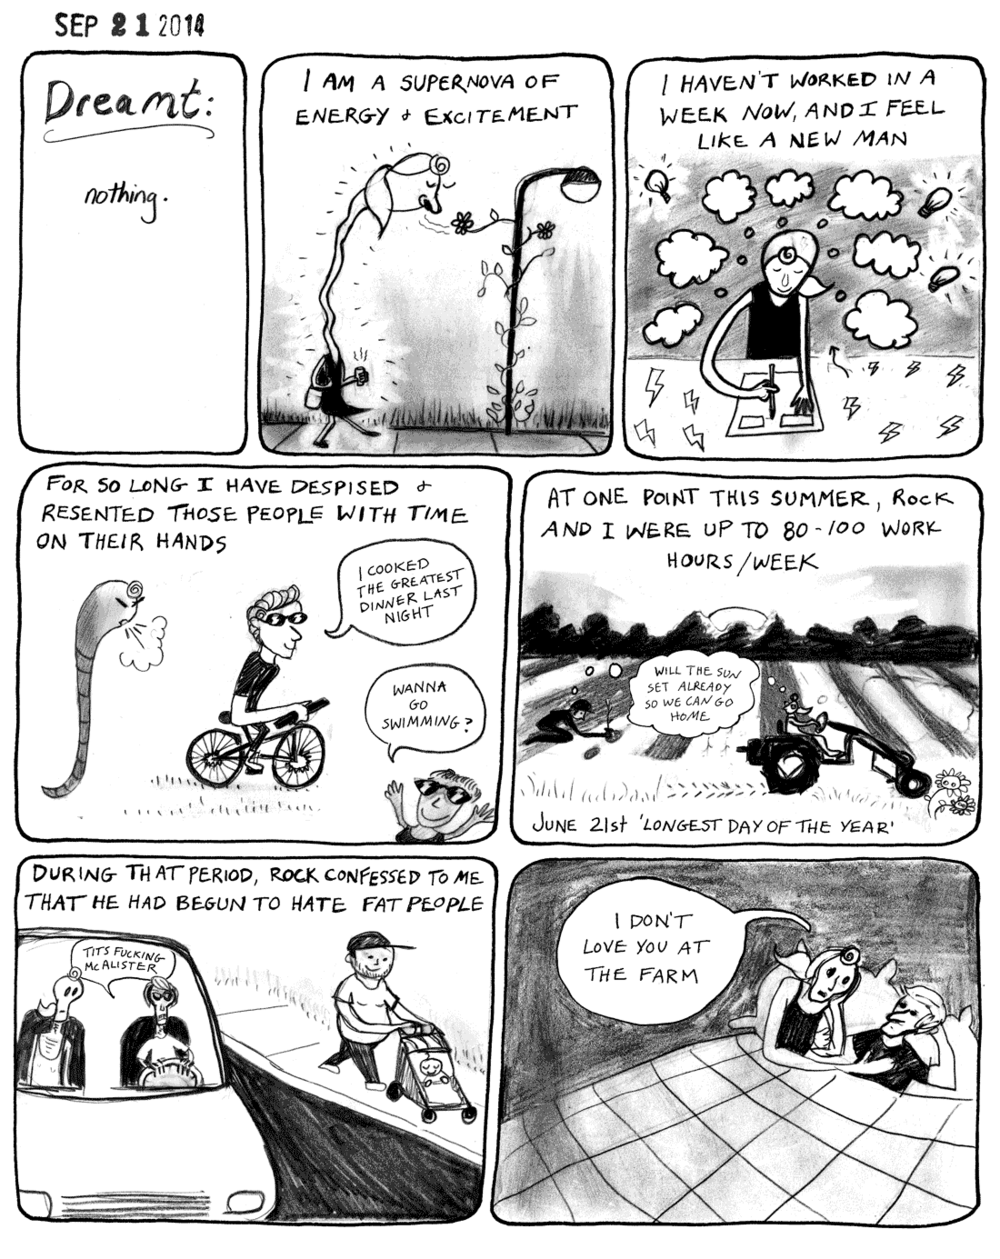 FARMING Diary comic anniversary - September 21, 2014 this farm season has been a lot easier Almanac 2015